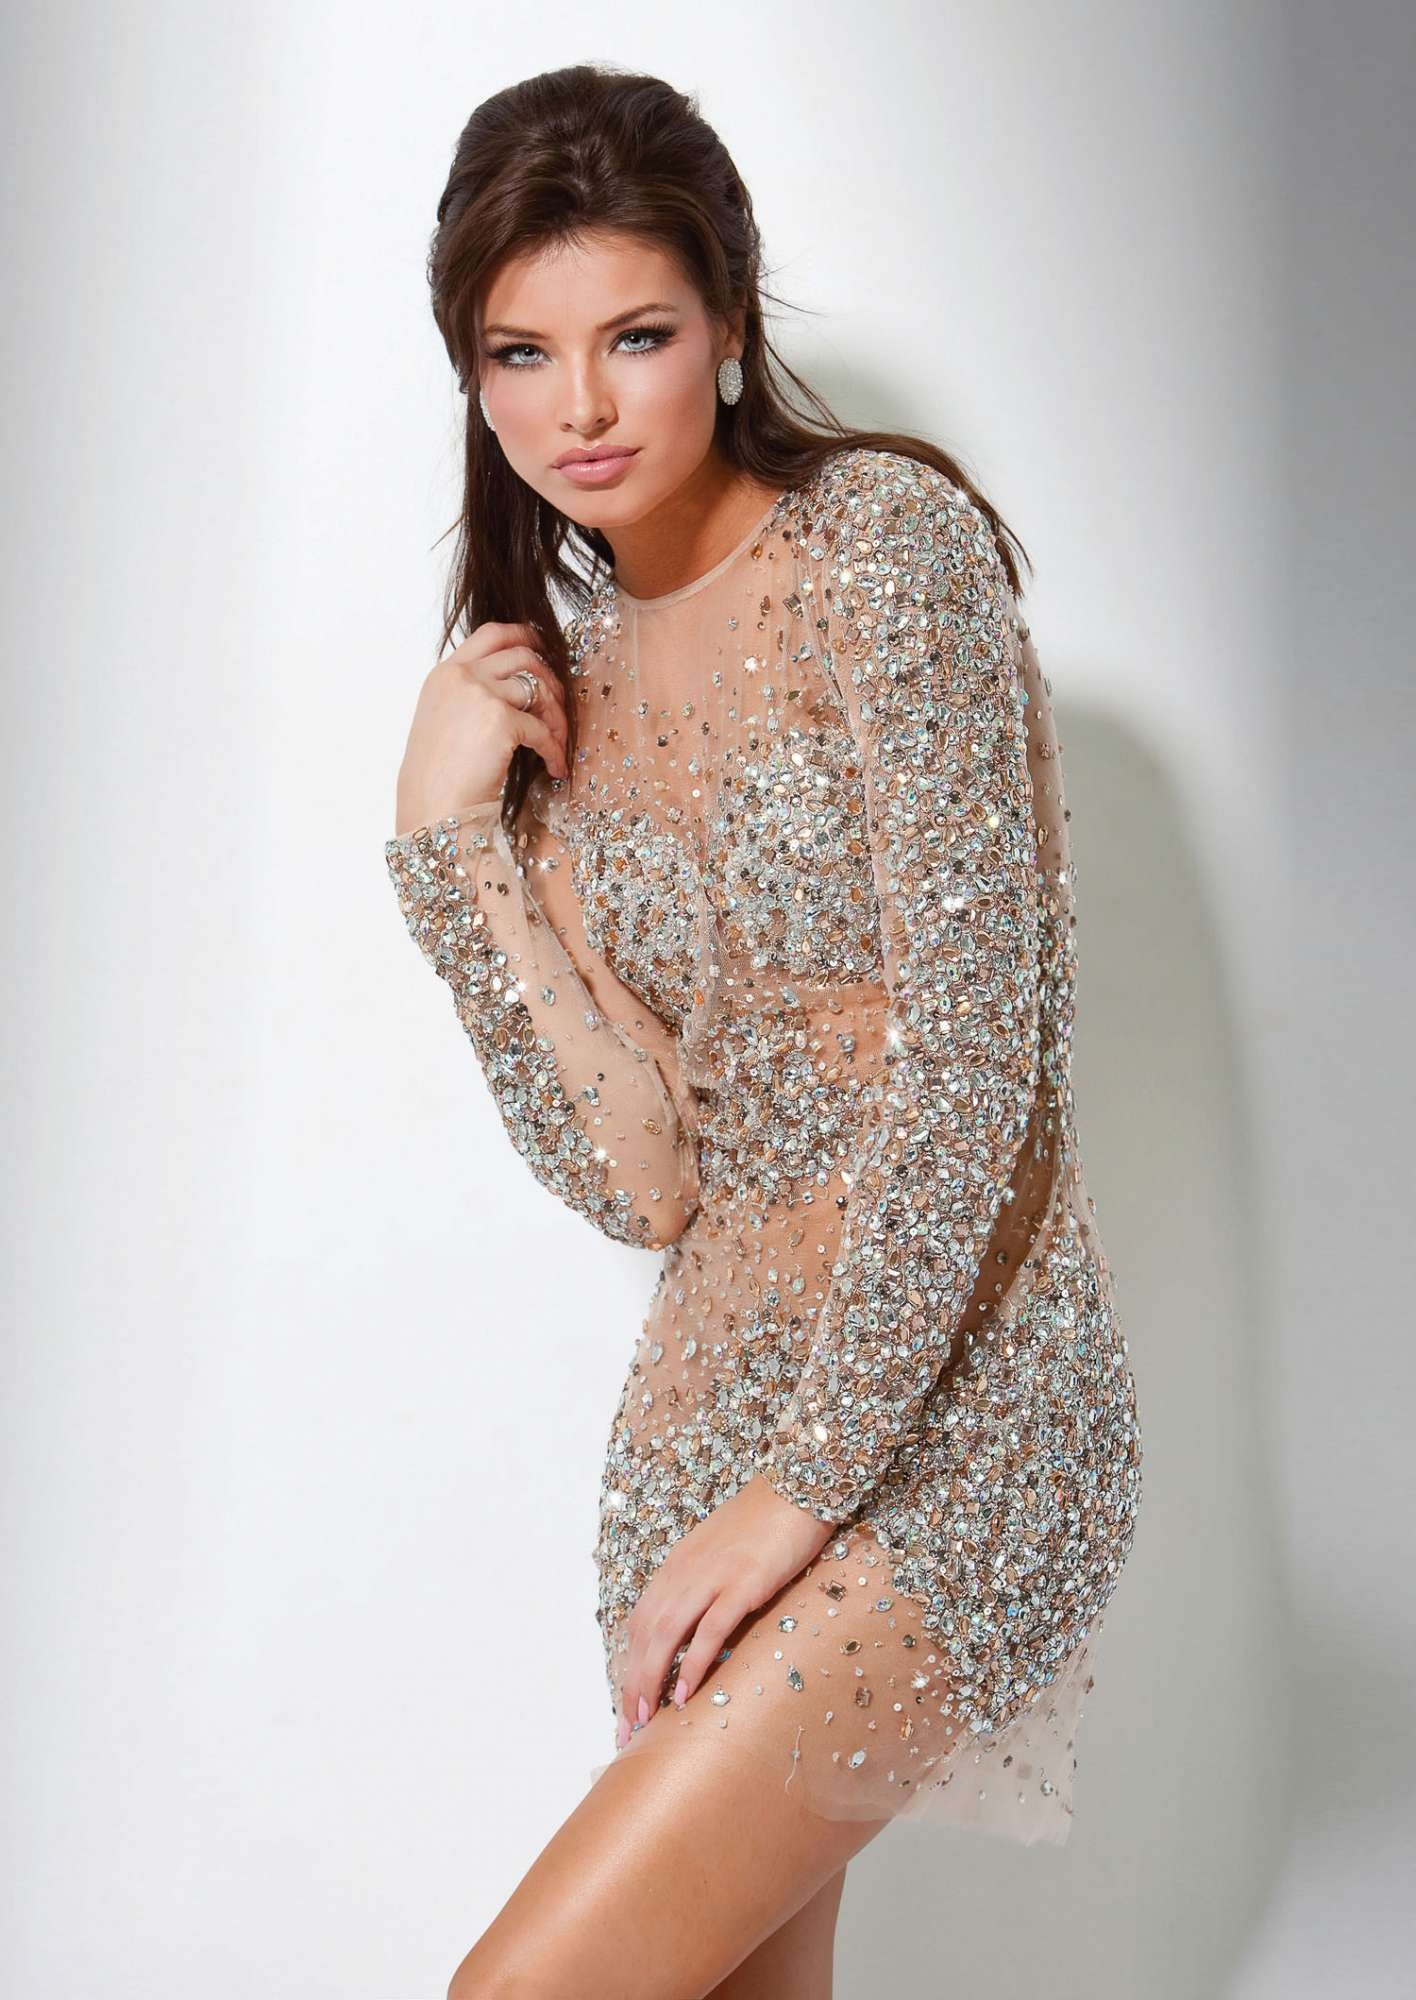 Jovani 7757 - Nude Beaded Sheer Sexy Dresses - RissyRoos.com